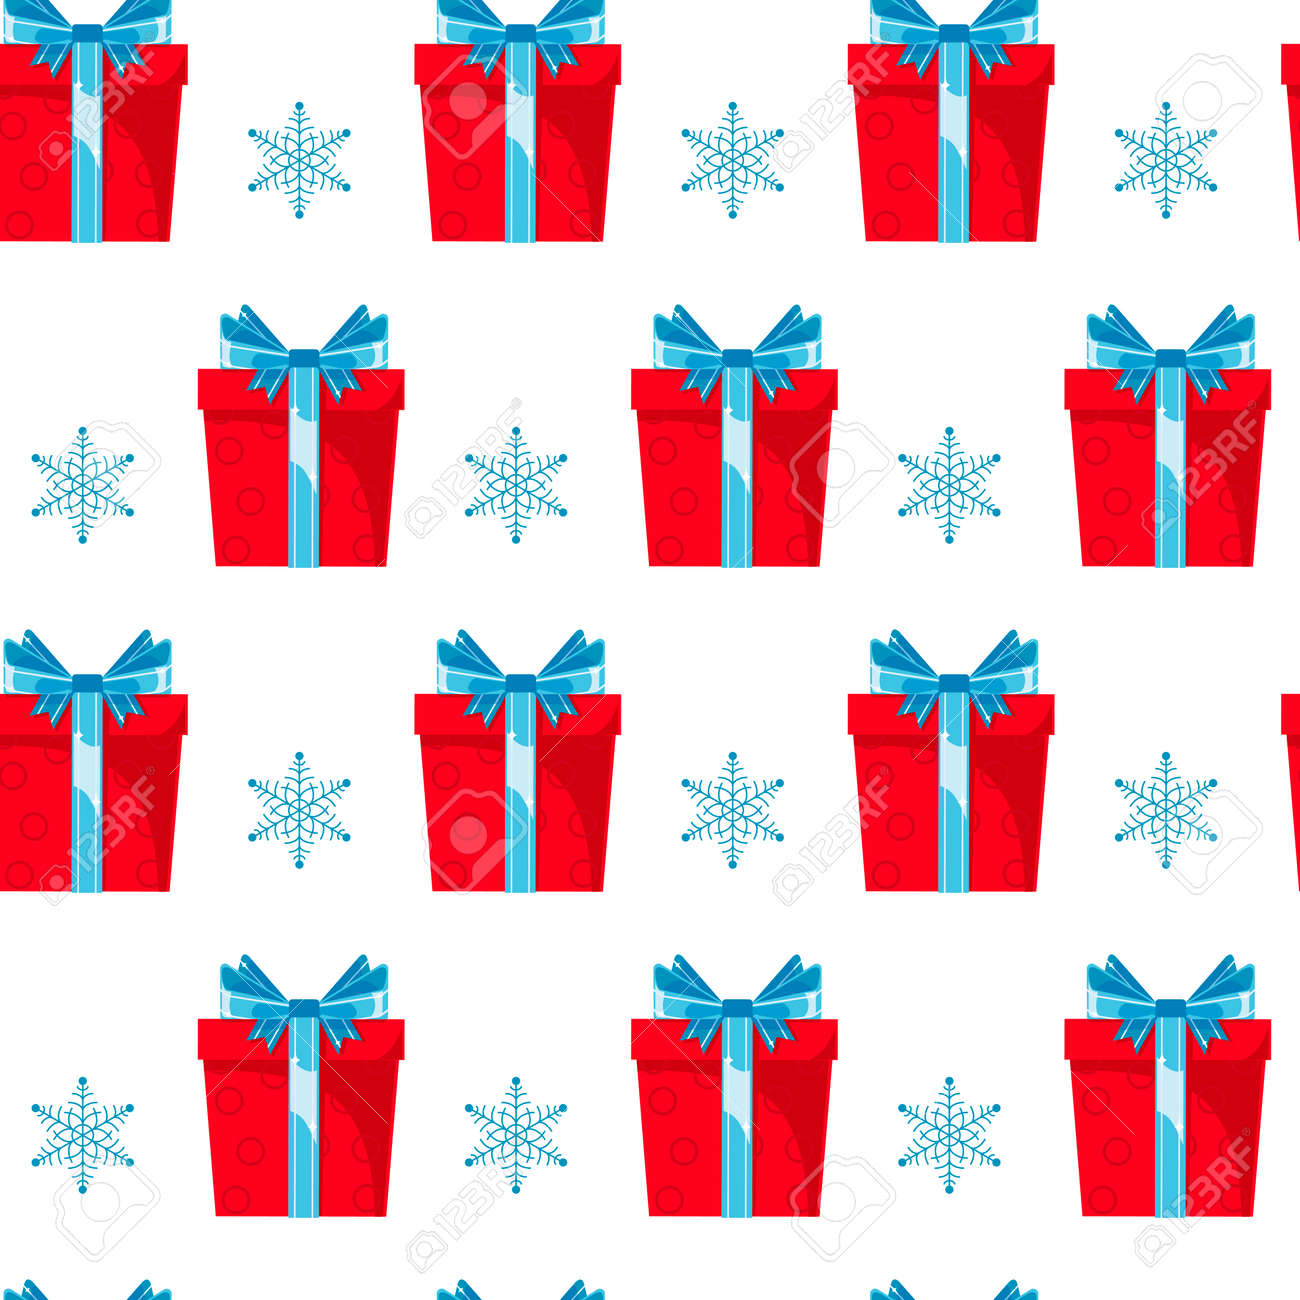 Seamless pattern red gift boxes with blue ribbon and bow on white background. Christmas, surprise, anniversary concept for wrapping, wallpaper, backdrop. - 155491400